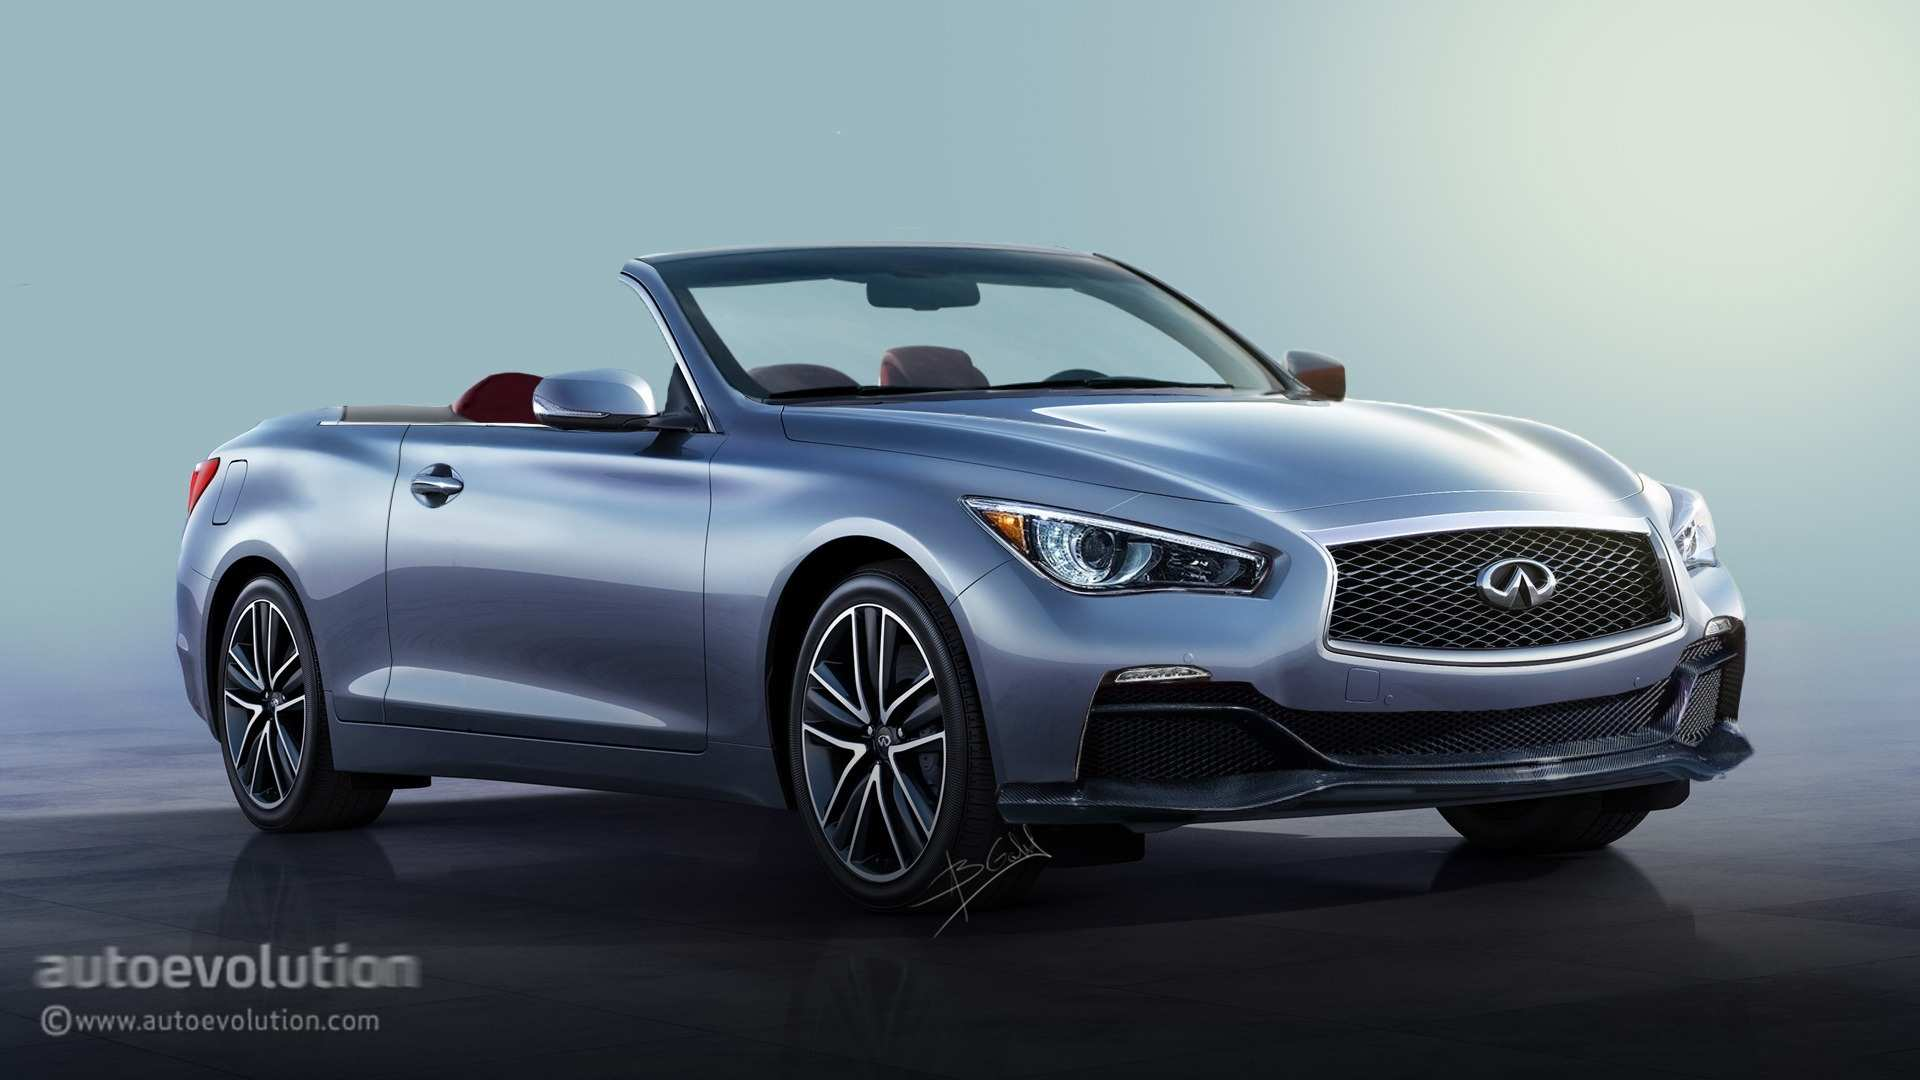 43 Great 2019 Infiniti Q60 Convertible Configurations by 2019 Infiniti Q60 Convertible